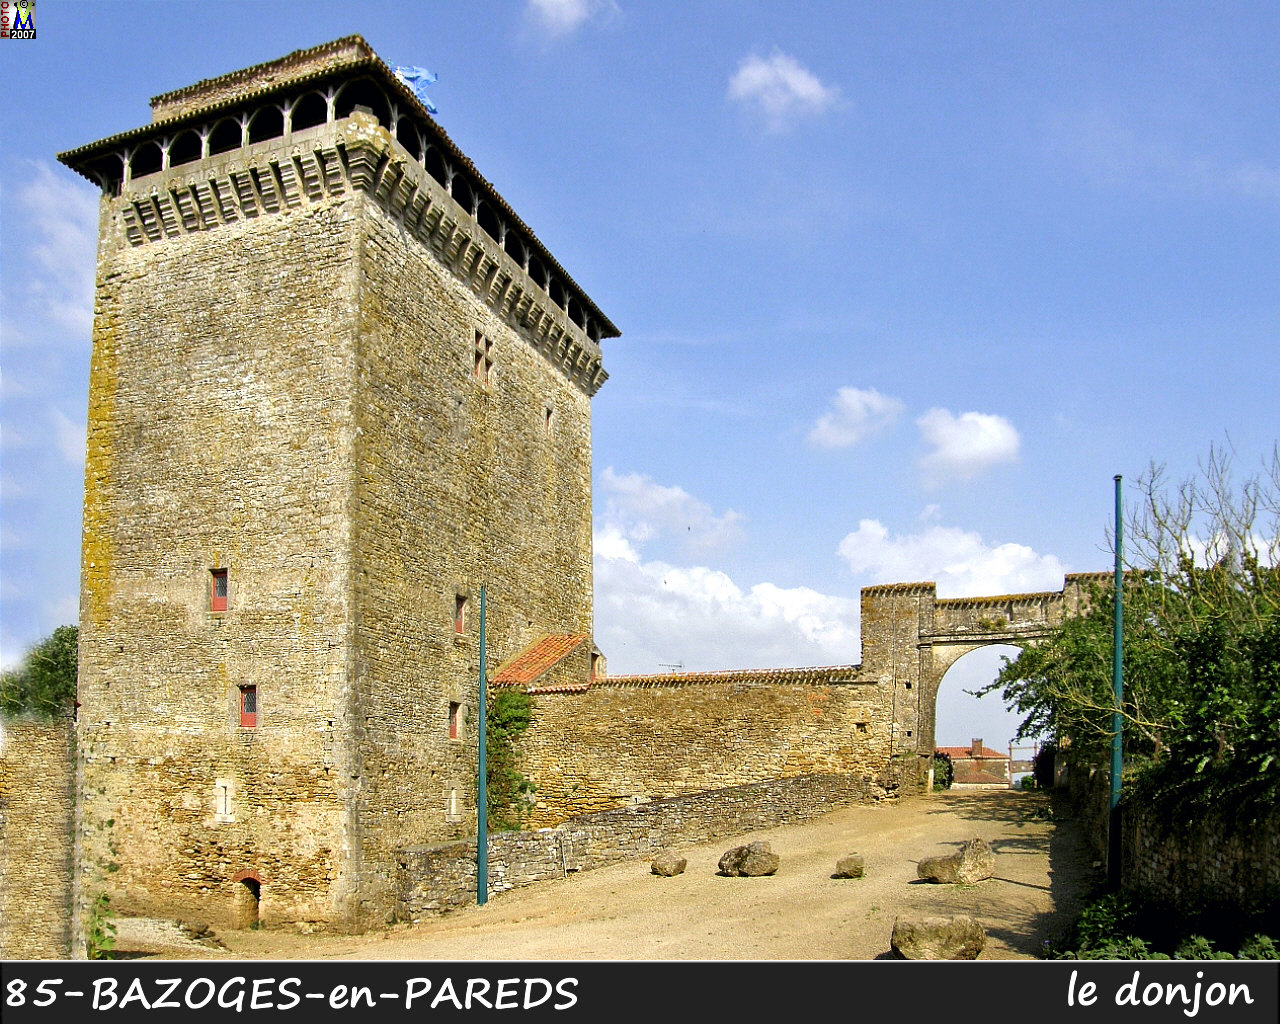 85BAZOGES-PAREDS_donjon_106.jpg